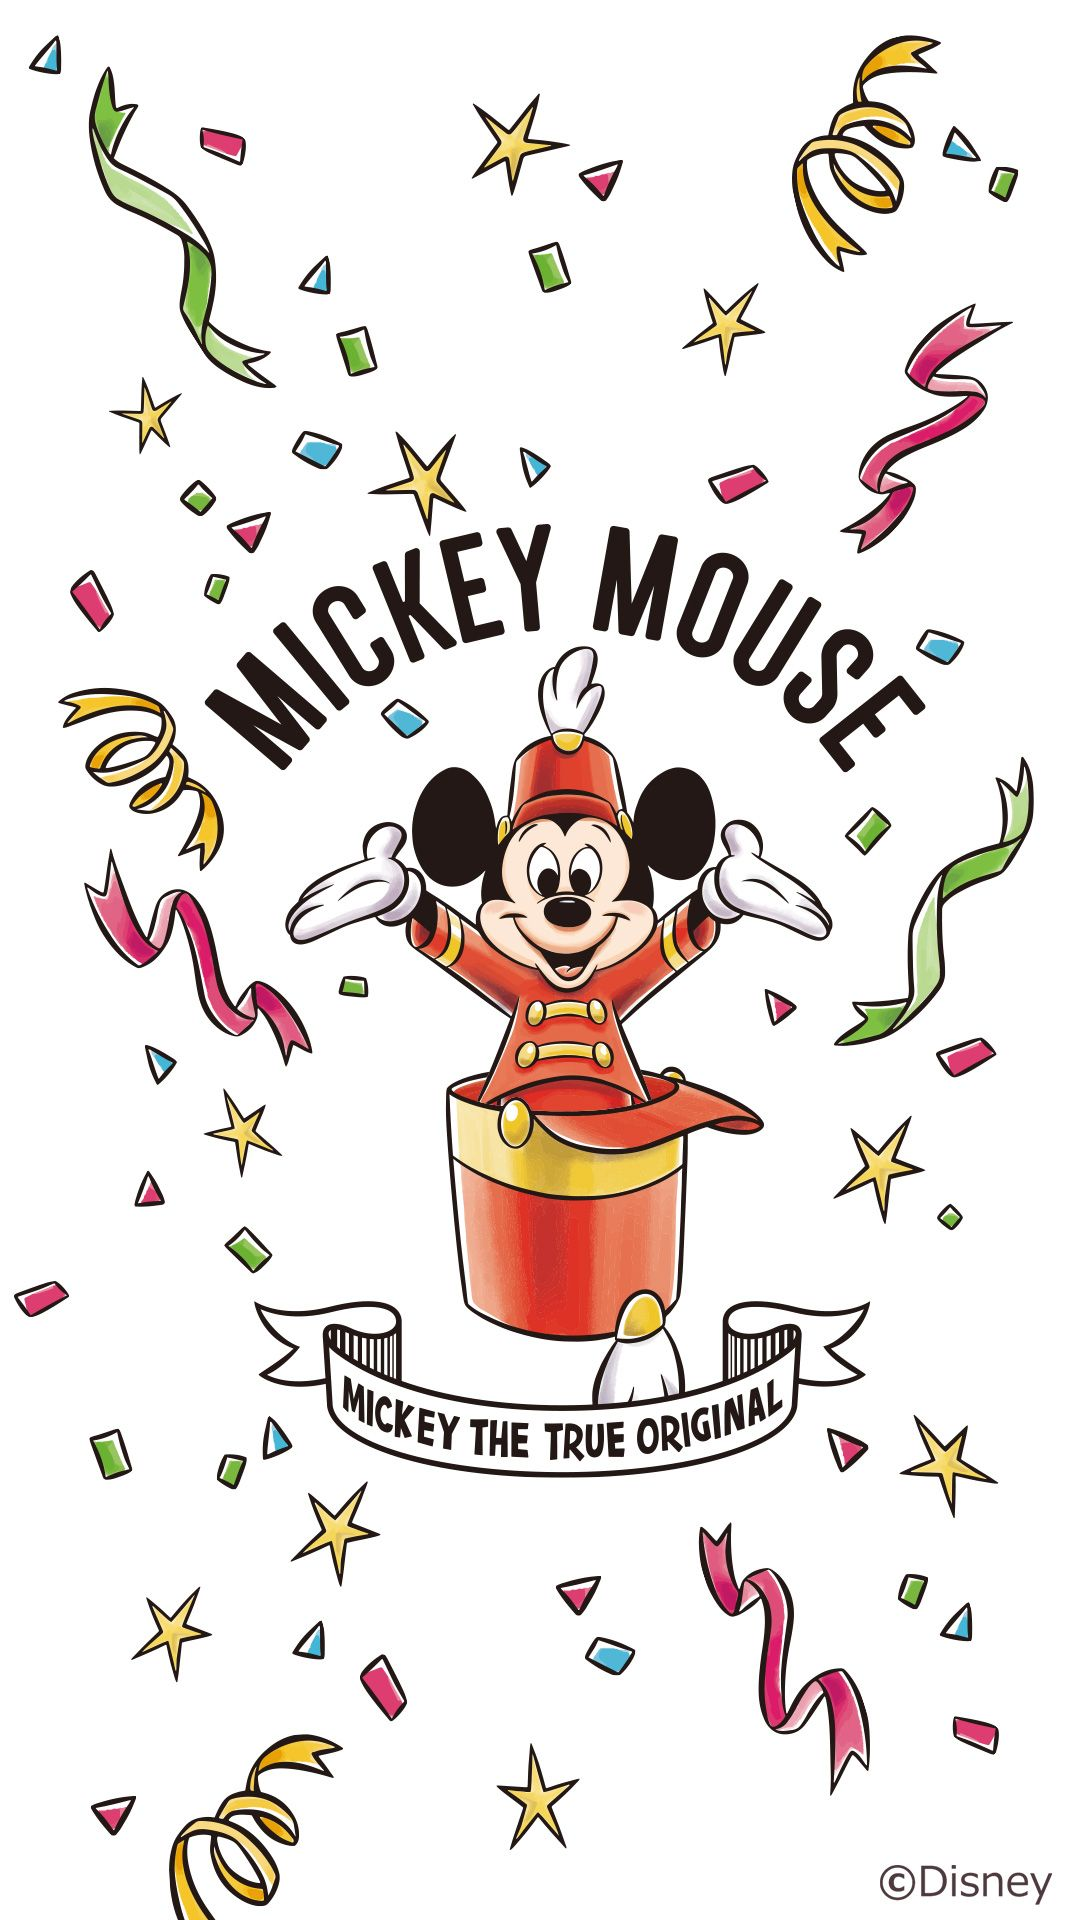 The Mickey mouse club back in 1955the opening day was in